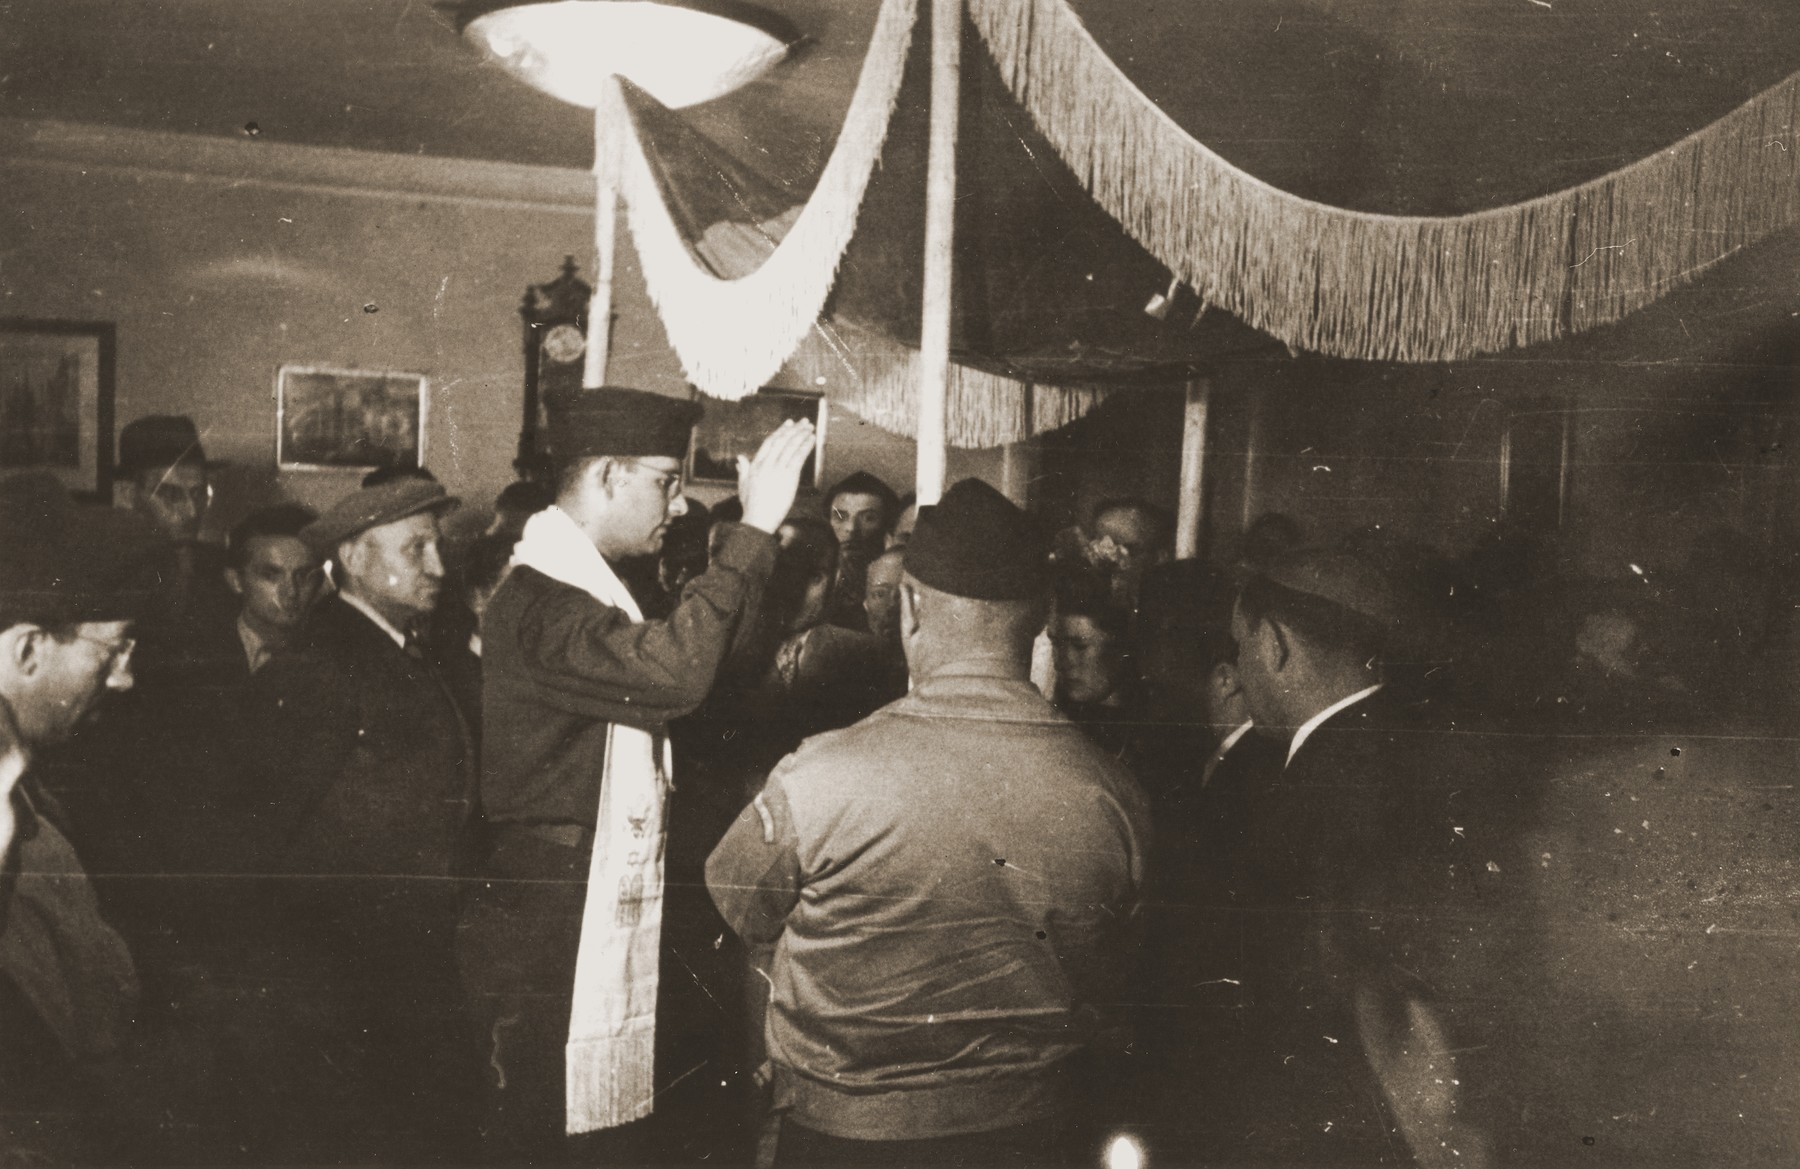 Rabbi Herbert Friedman blesses a bride and groom under a marriage canopy during a wedding at the Berlin chaplain's center.